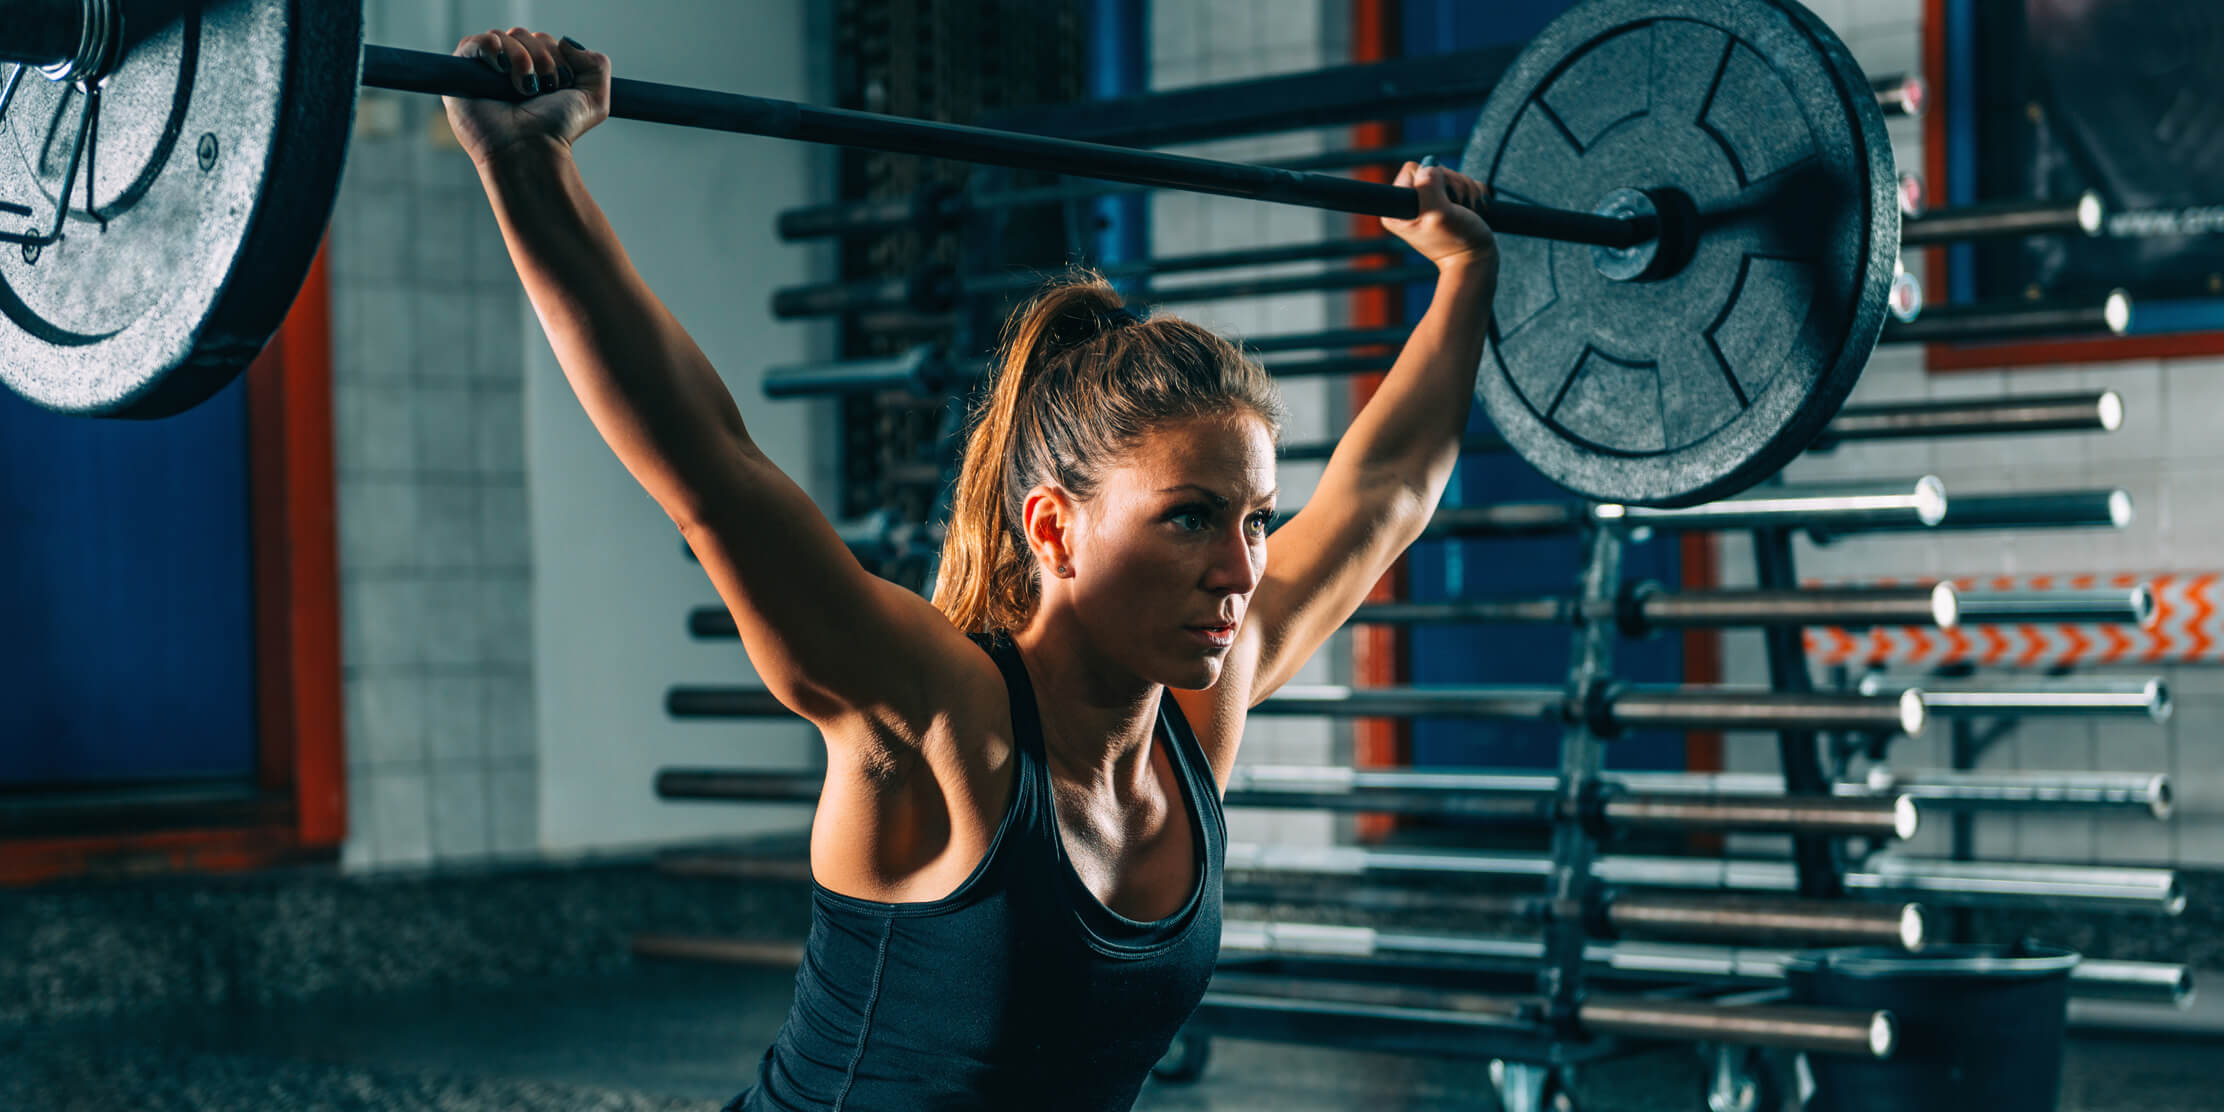 Photo for Consumer Health: Weight training to improve your muscular fitness